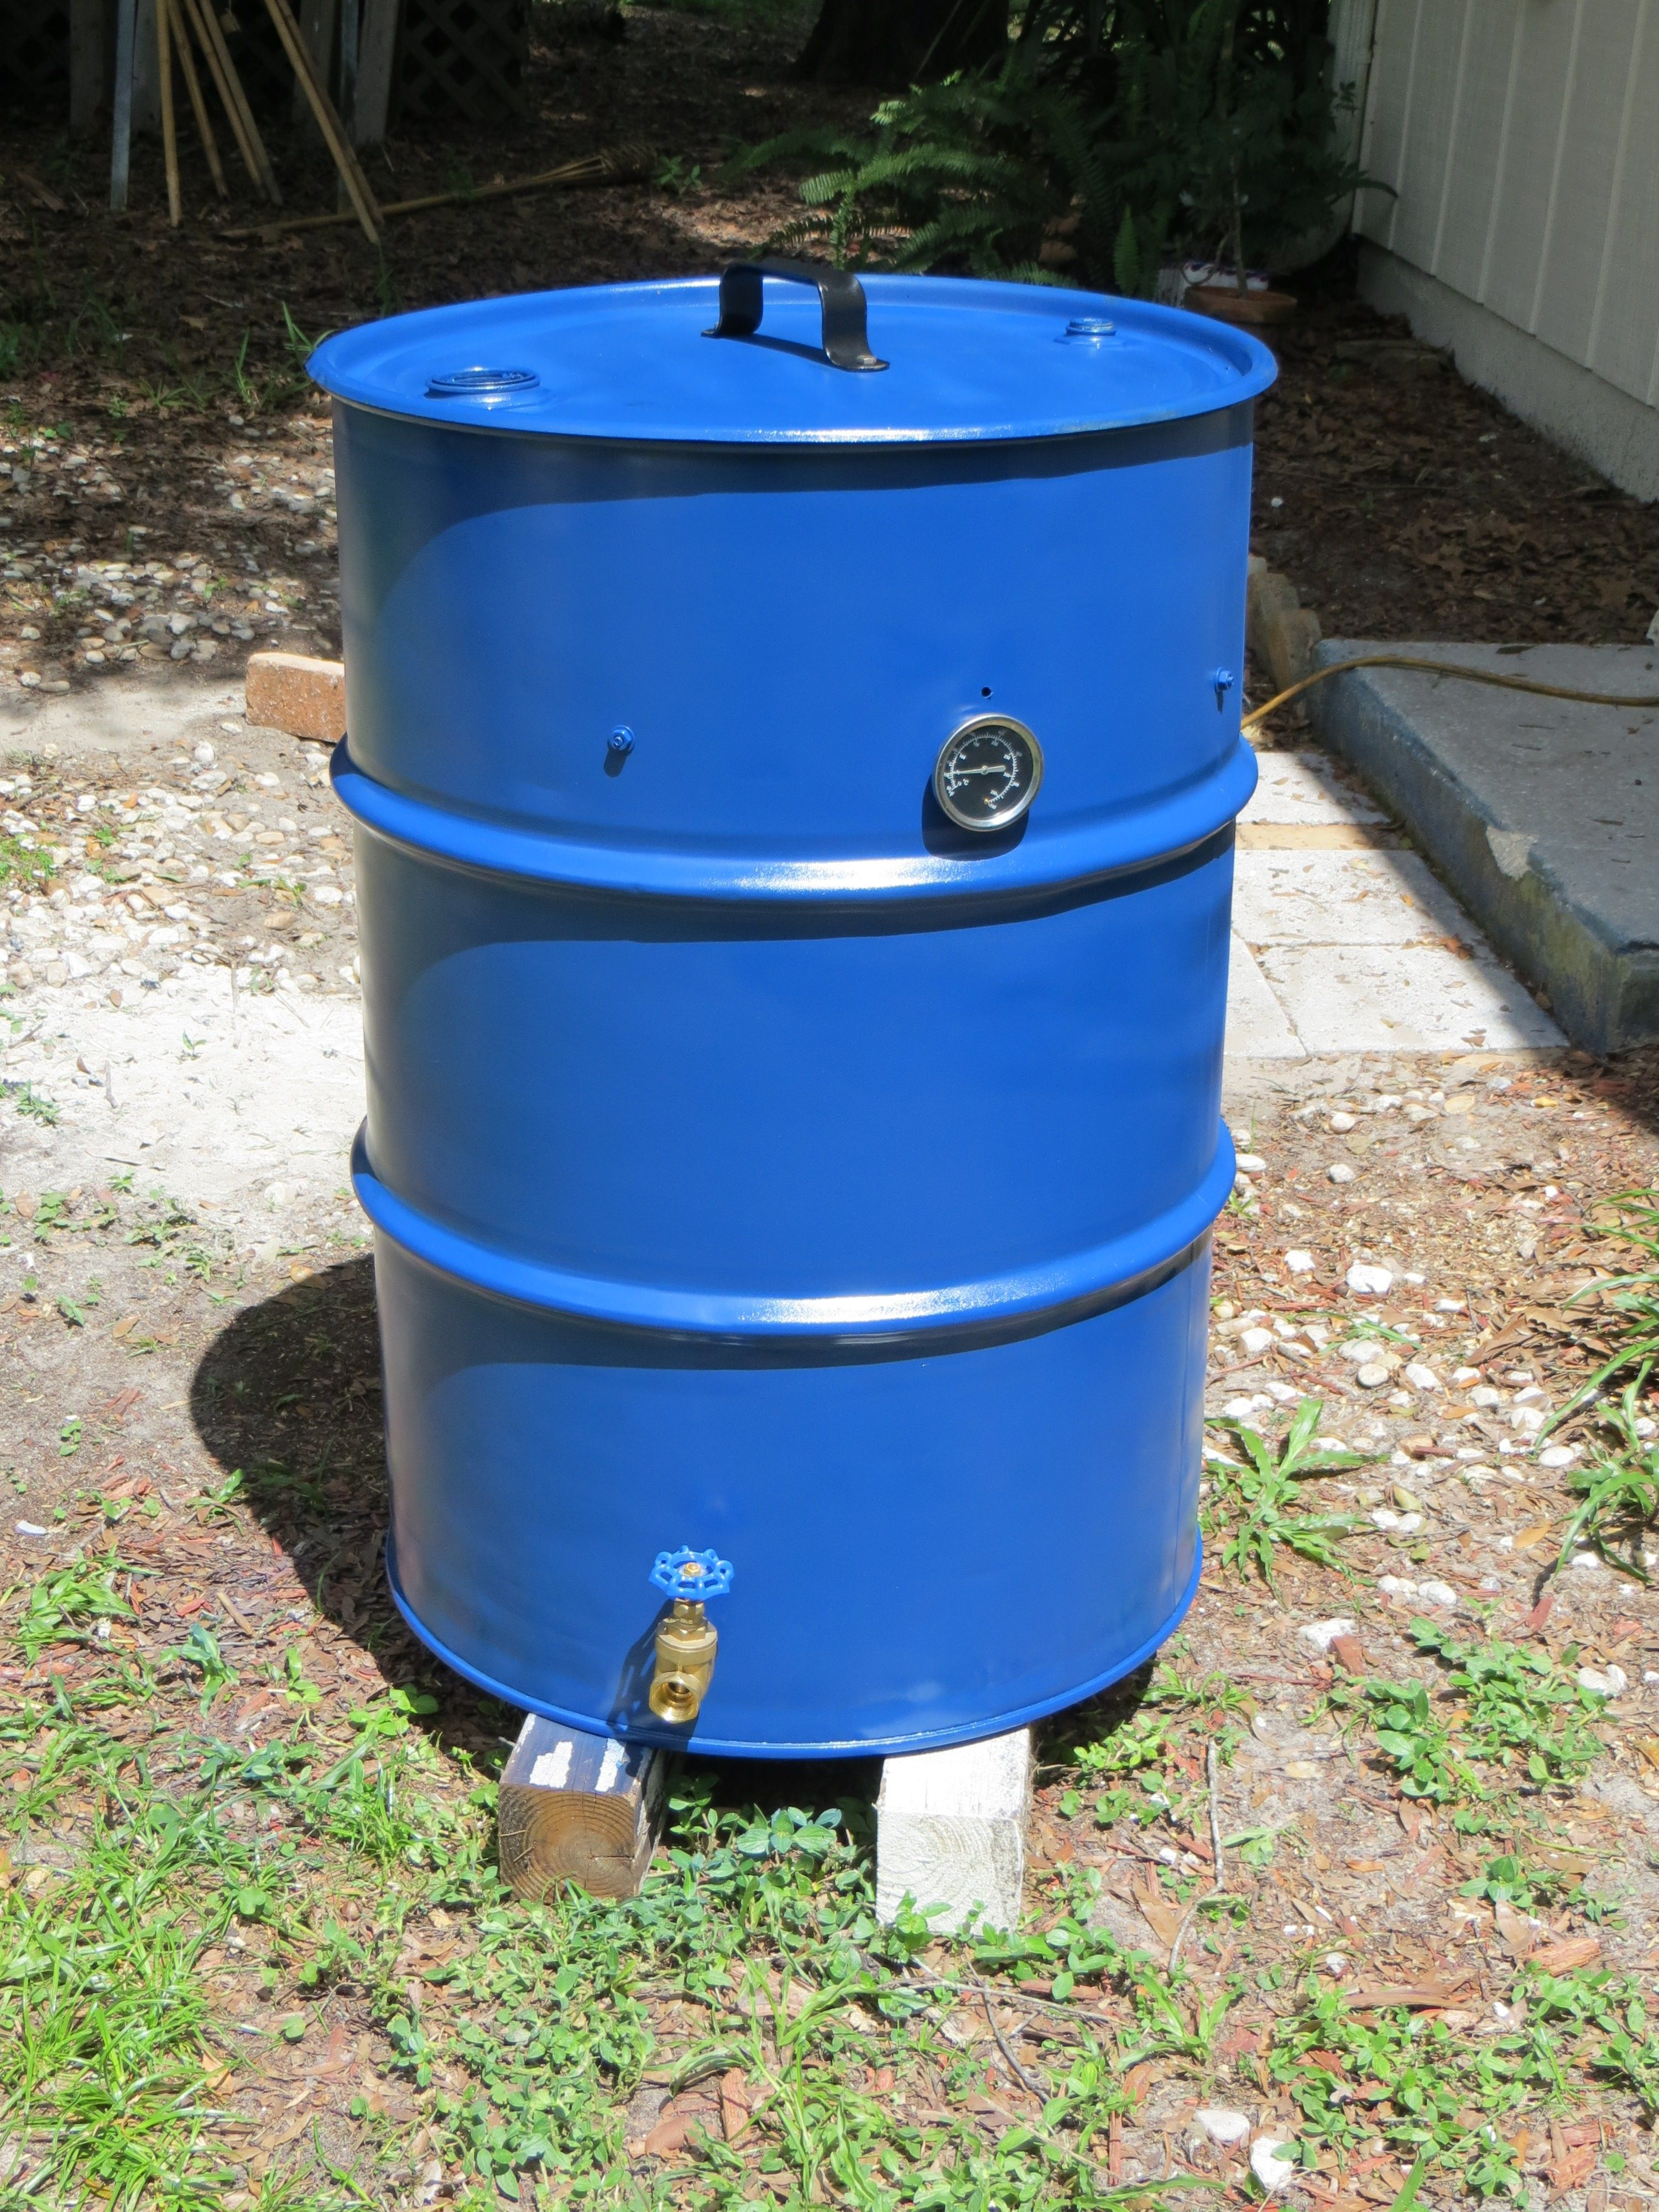 build your own ugly drum smoker uds diy projects pinterest commercial smoker ugly drum. Black Bedroom Furniture Sets. Home Design Ideas